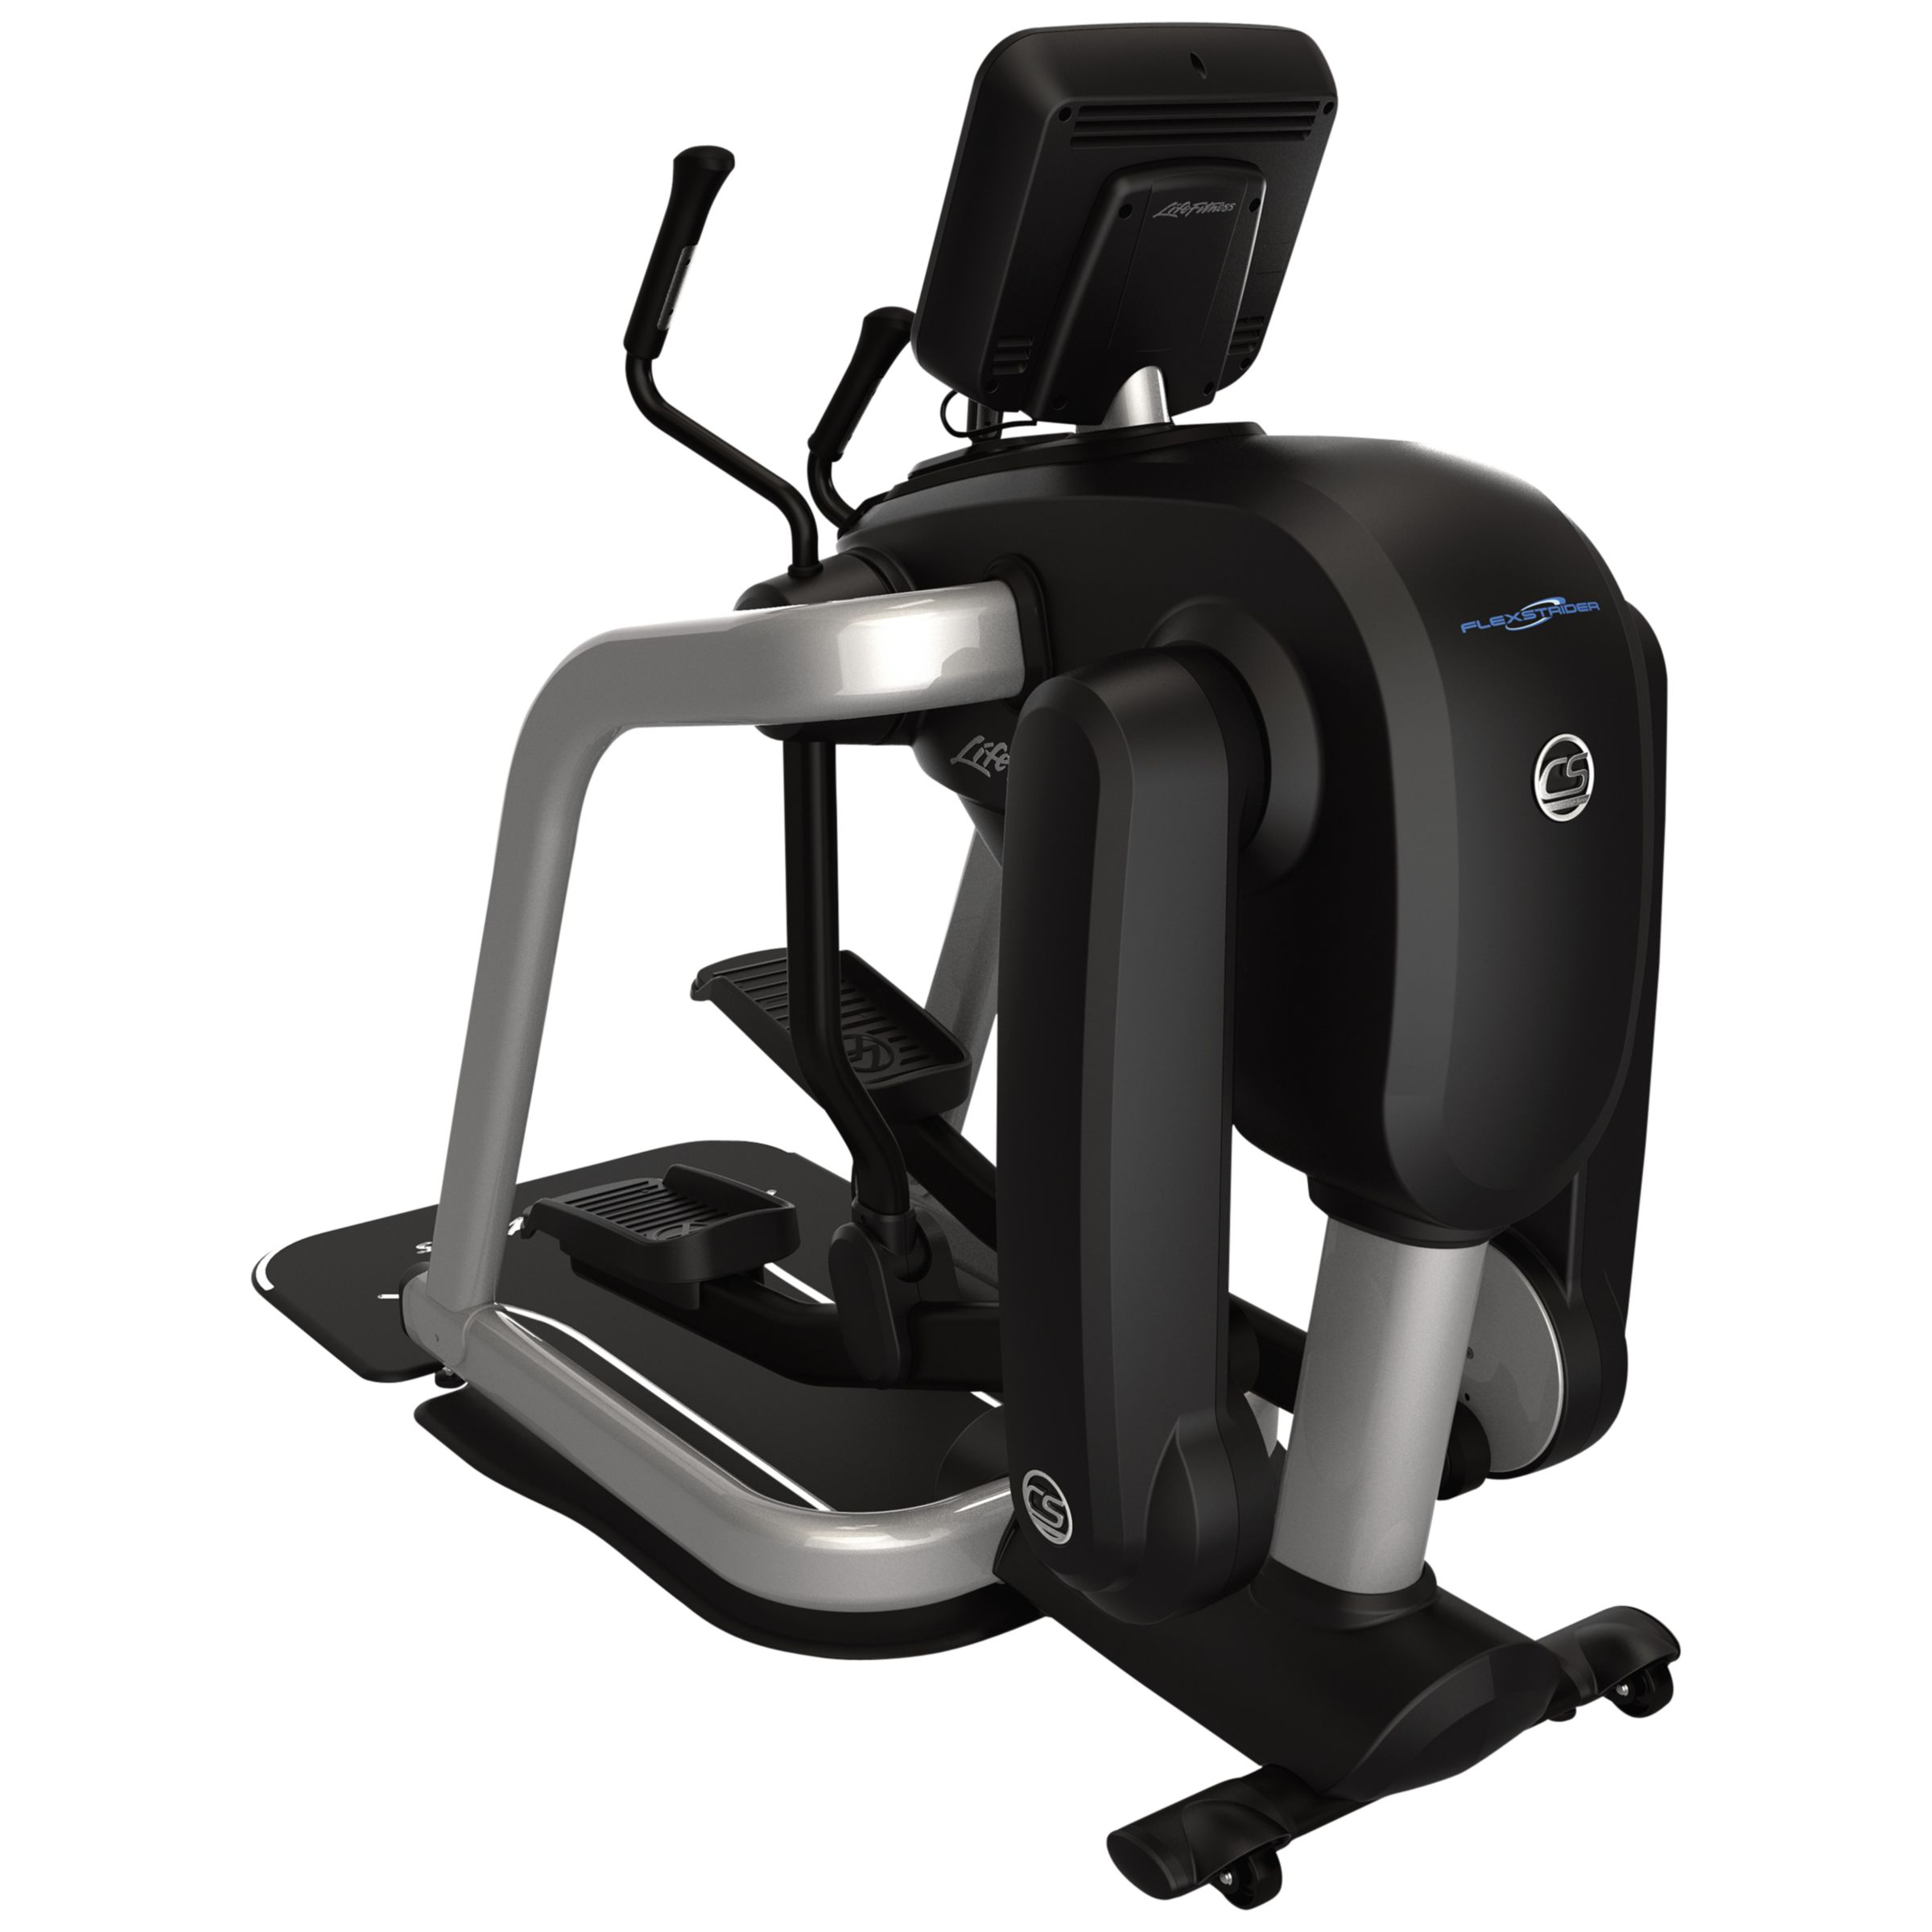 Life Fitness Life Fitness FlexStrider Cross Trainer With Discover SE, Black